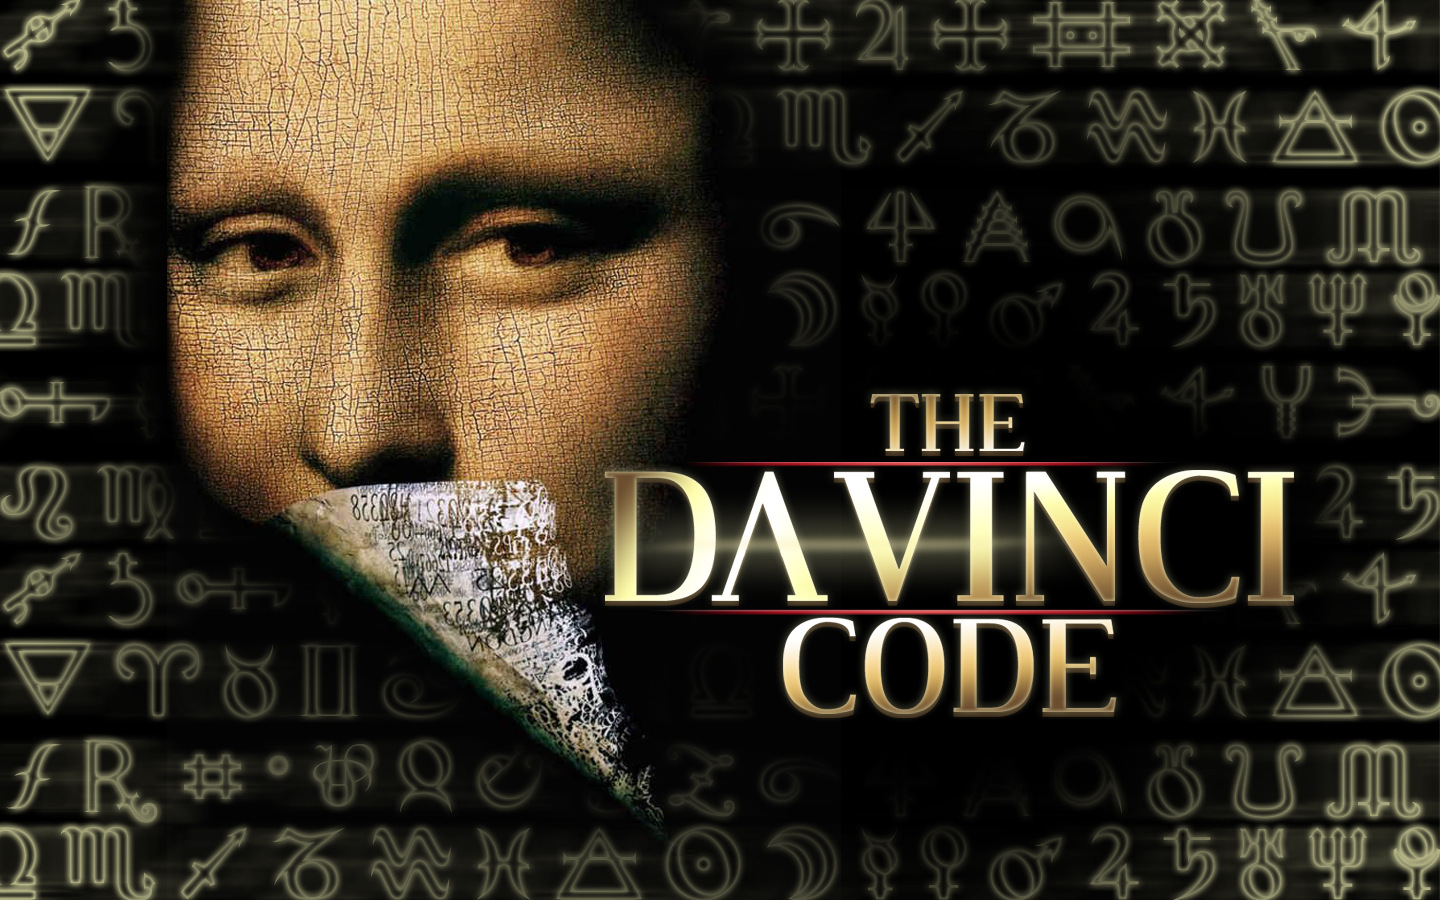 http://michaelcavacini.files.wordpress.com/2013/04/the-da-vinci-code.jpg